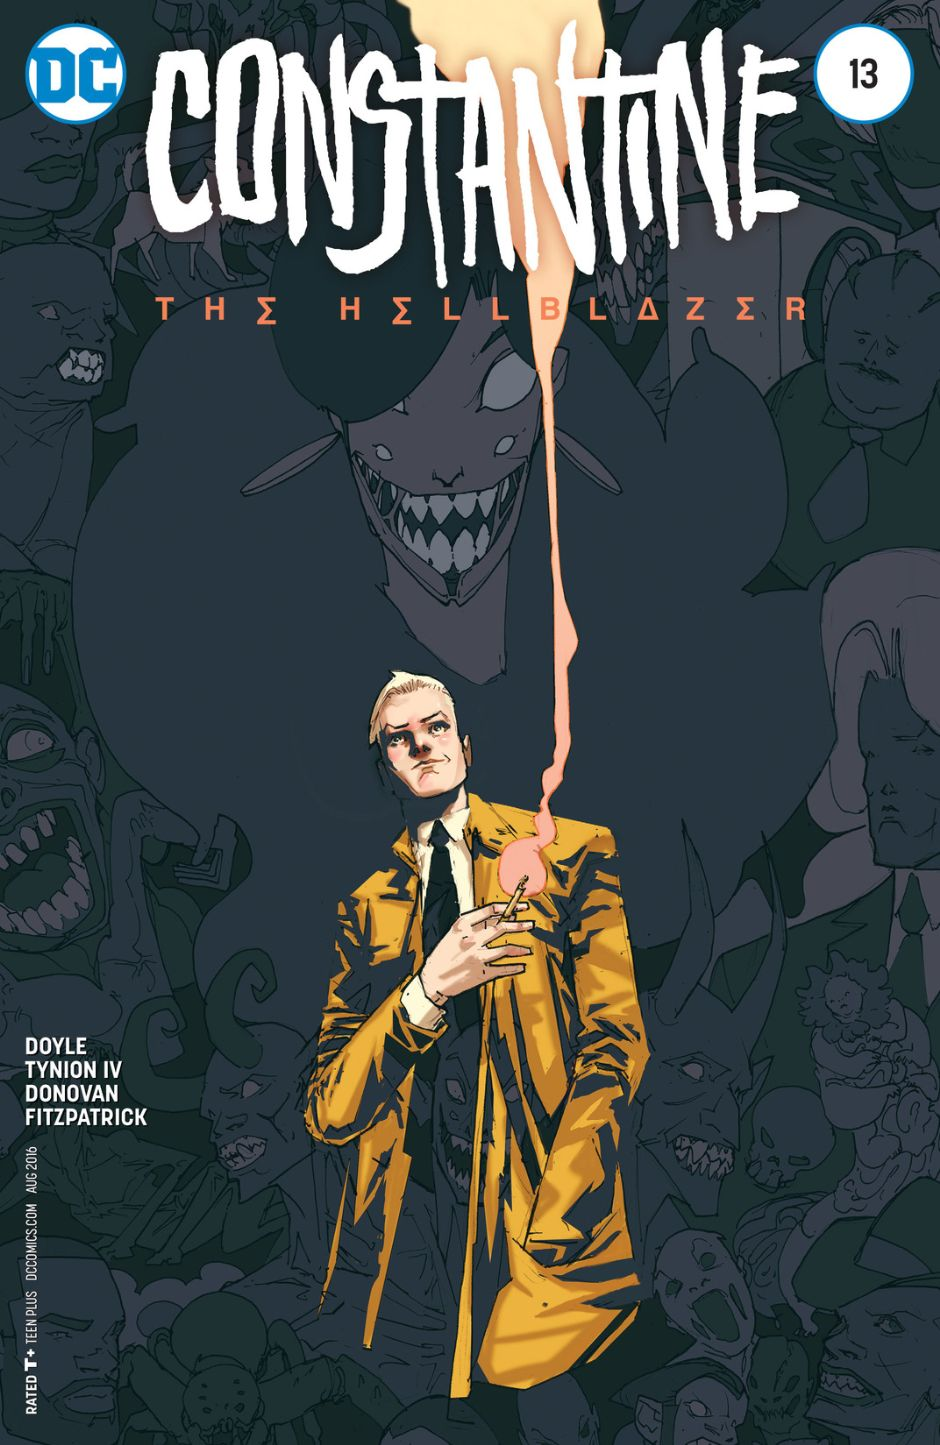 Constantine: The Hellblazer Vol 1 13